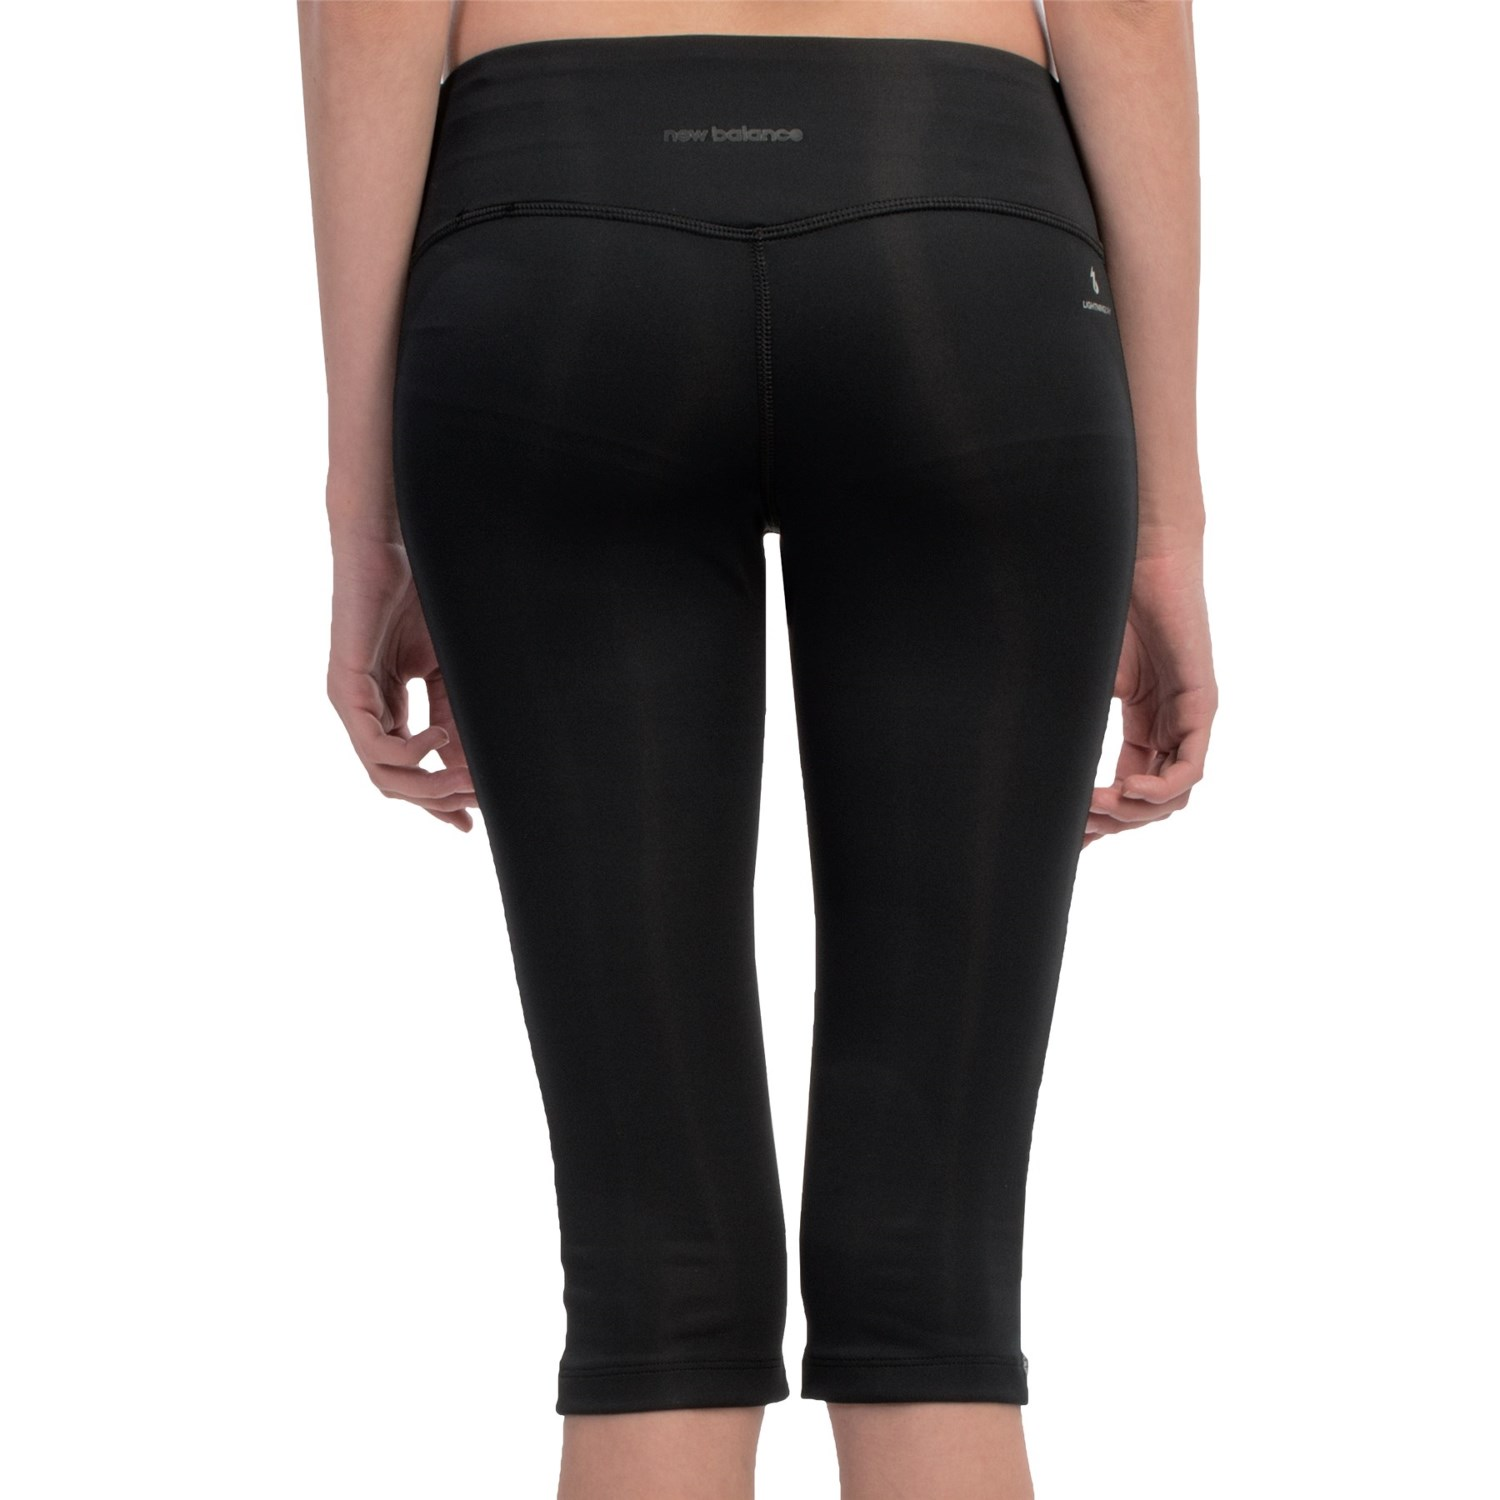 Watch video reviews and find helpful info on Women's Pants. Get Awesome Gear, Amazing Service and FREE shipping on orders over $